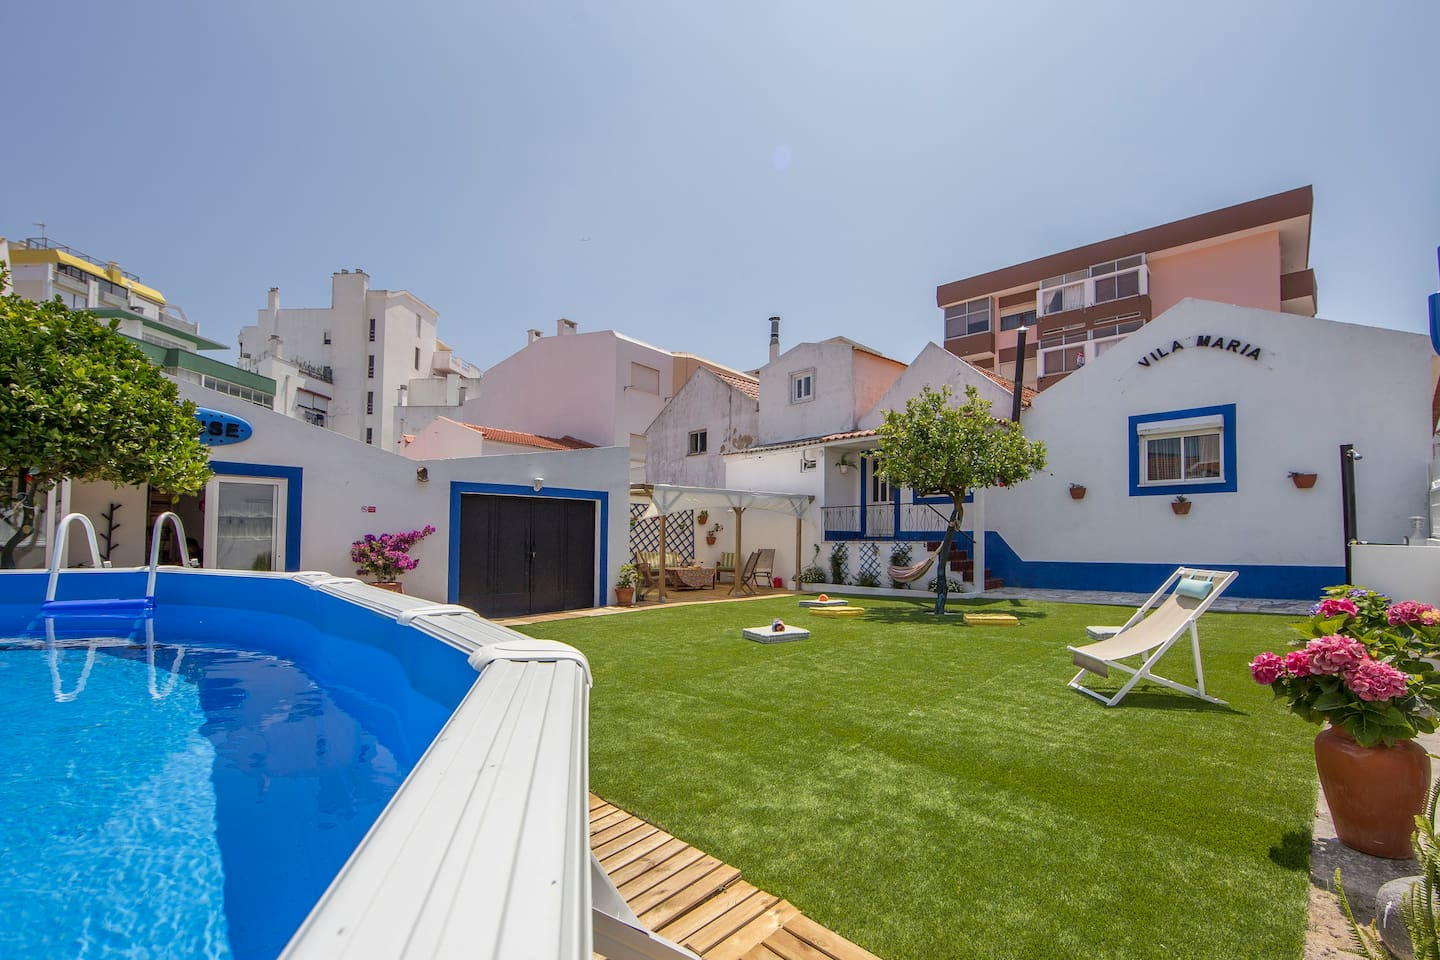 Shared-use garden and swimming pool